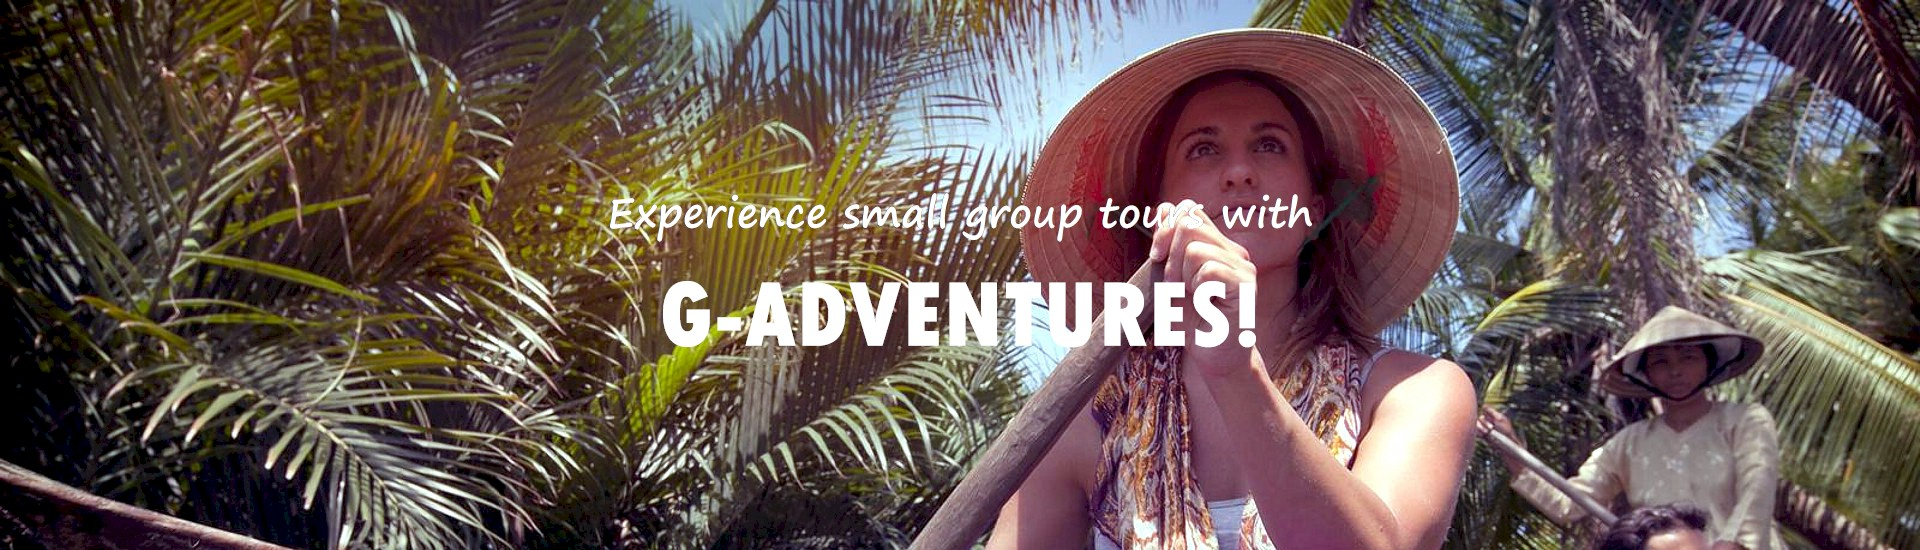 Experience small group tours with